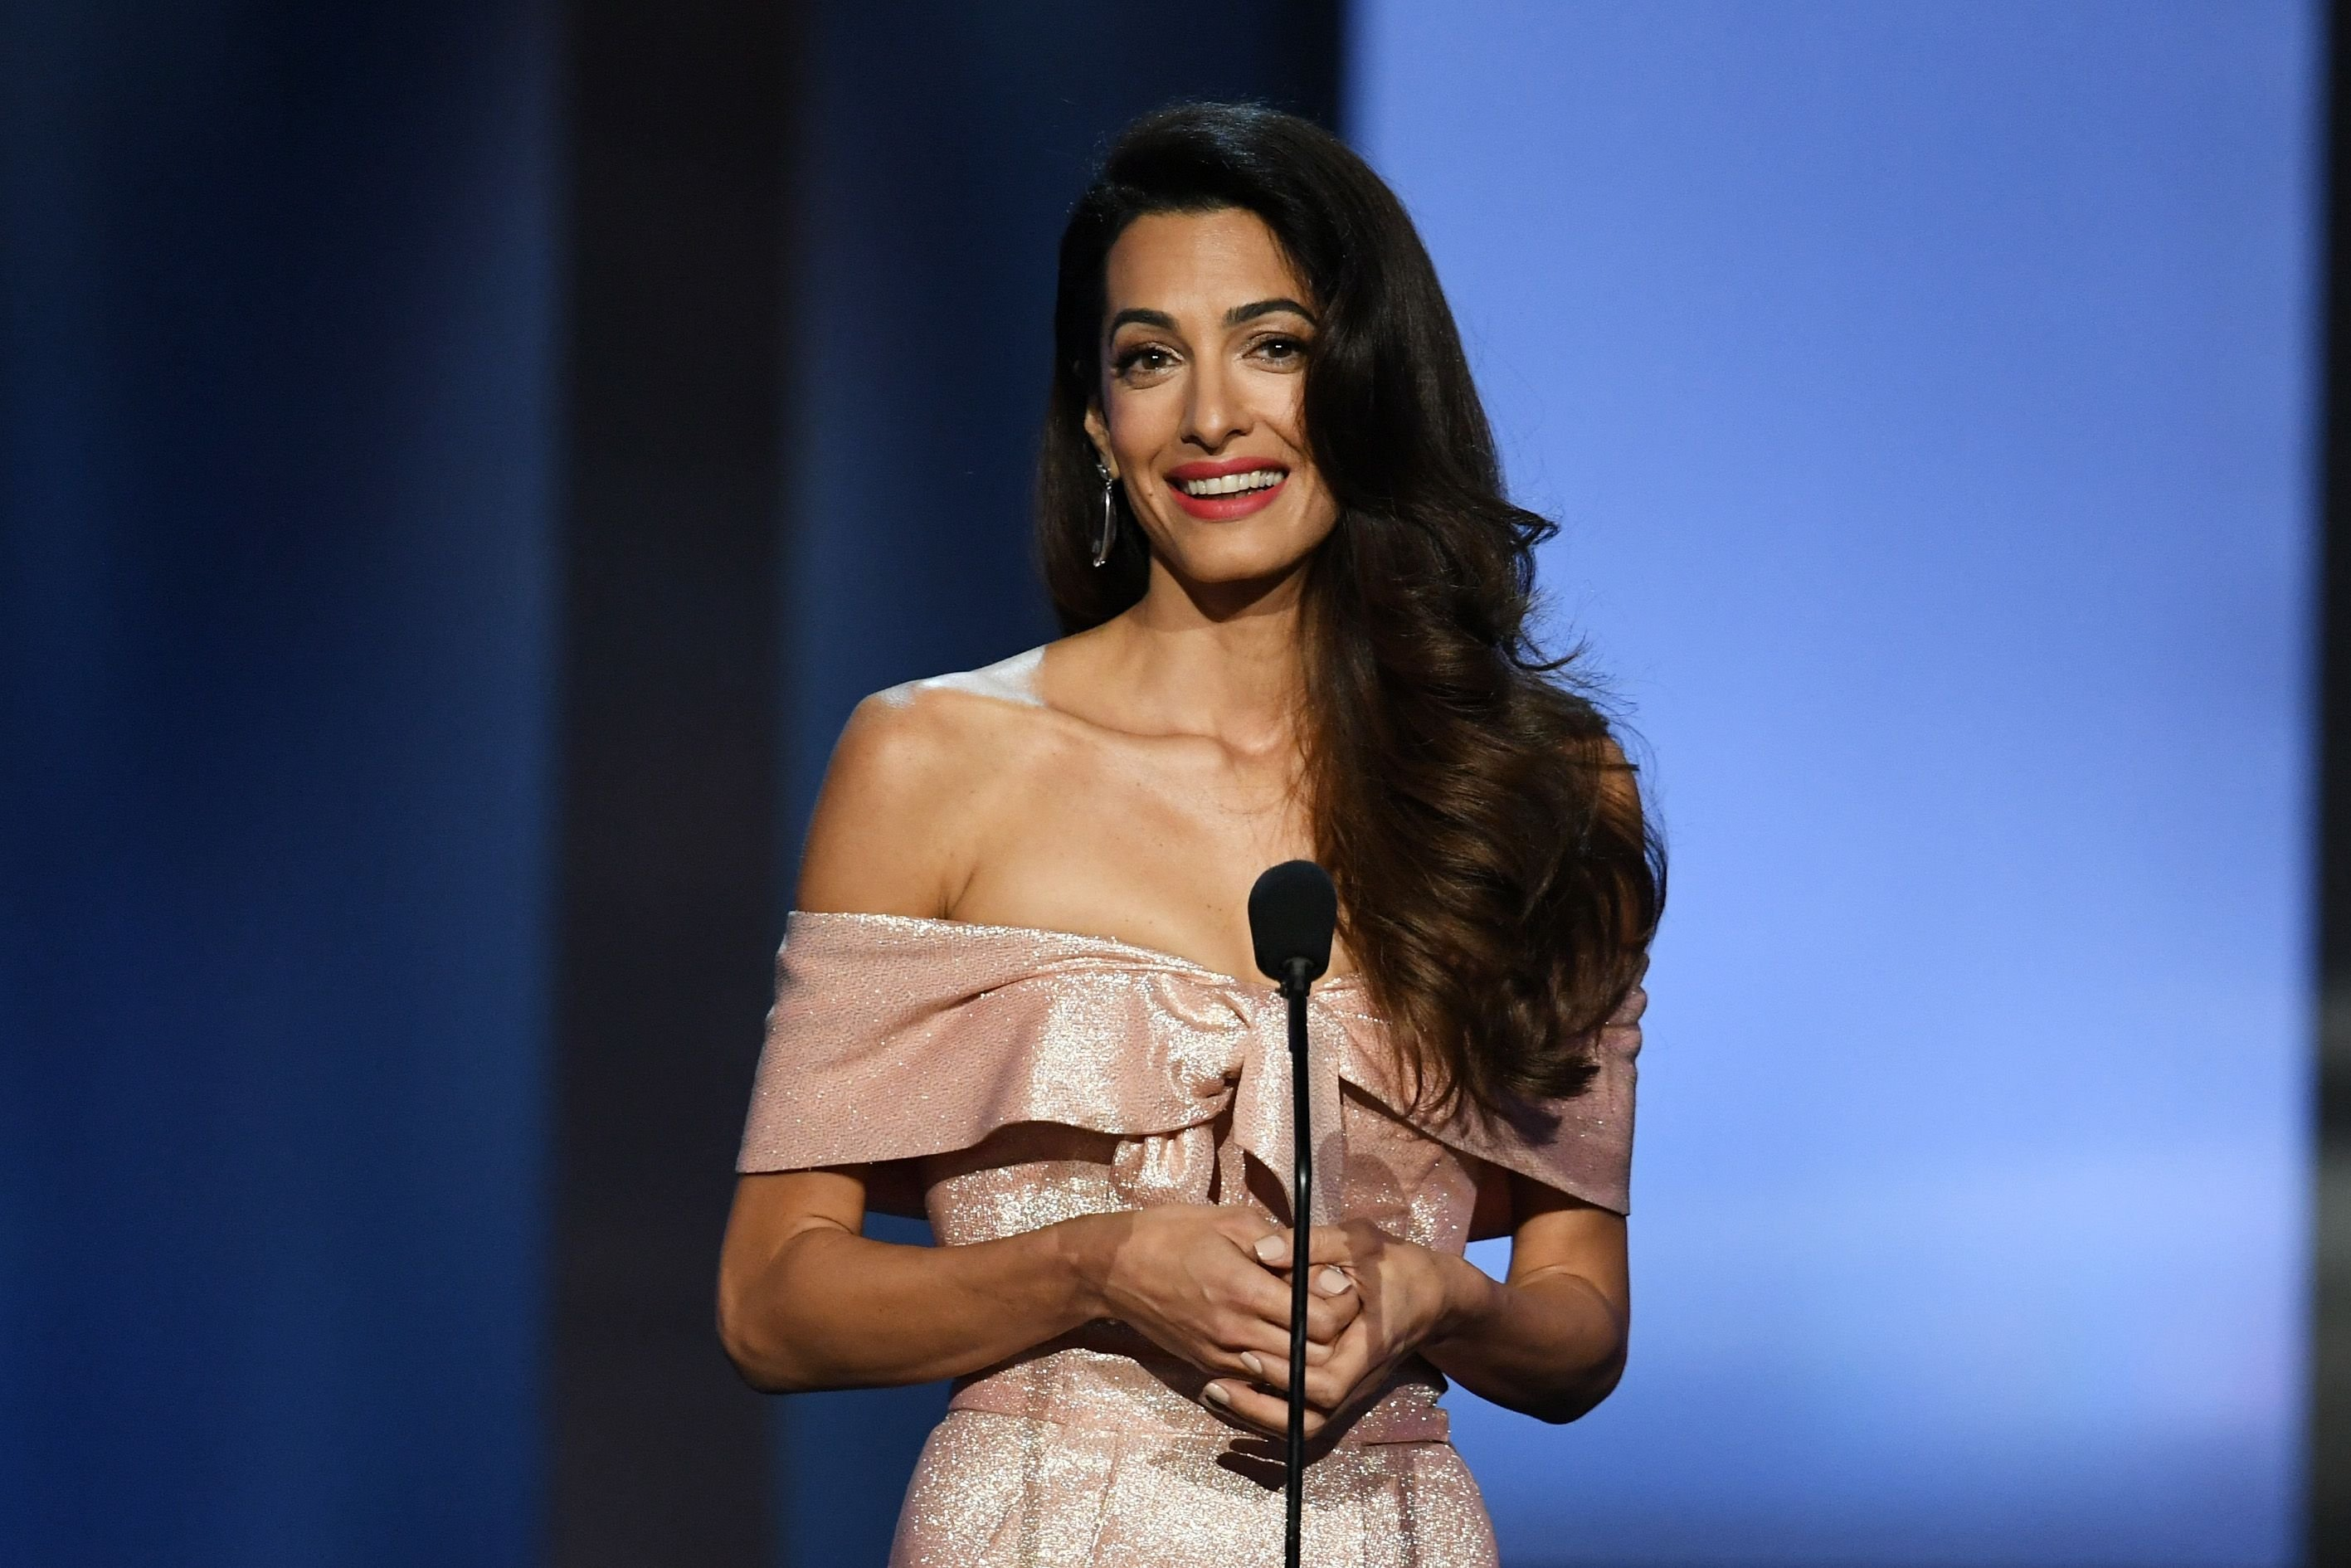 Amal Clooney speaks onstage at the American Film Institute's 46th Life Achievement Award Gala Tribute to George Clooney at Dolby Theatre on June 7, 2018 | Photo: Getty Images